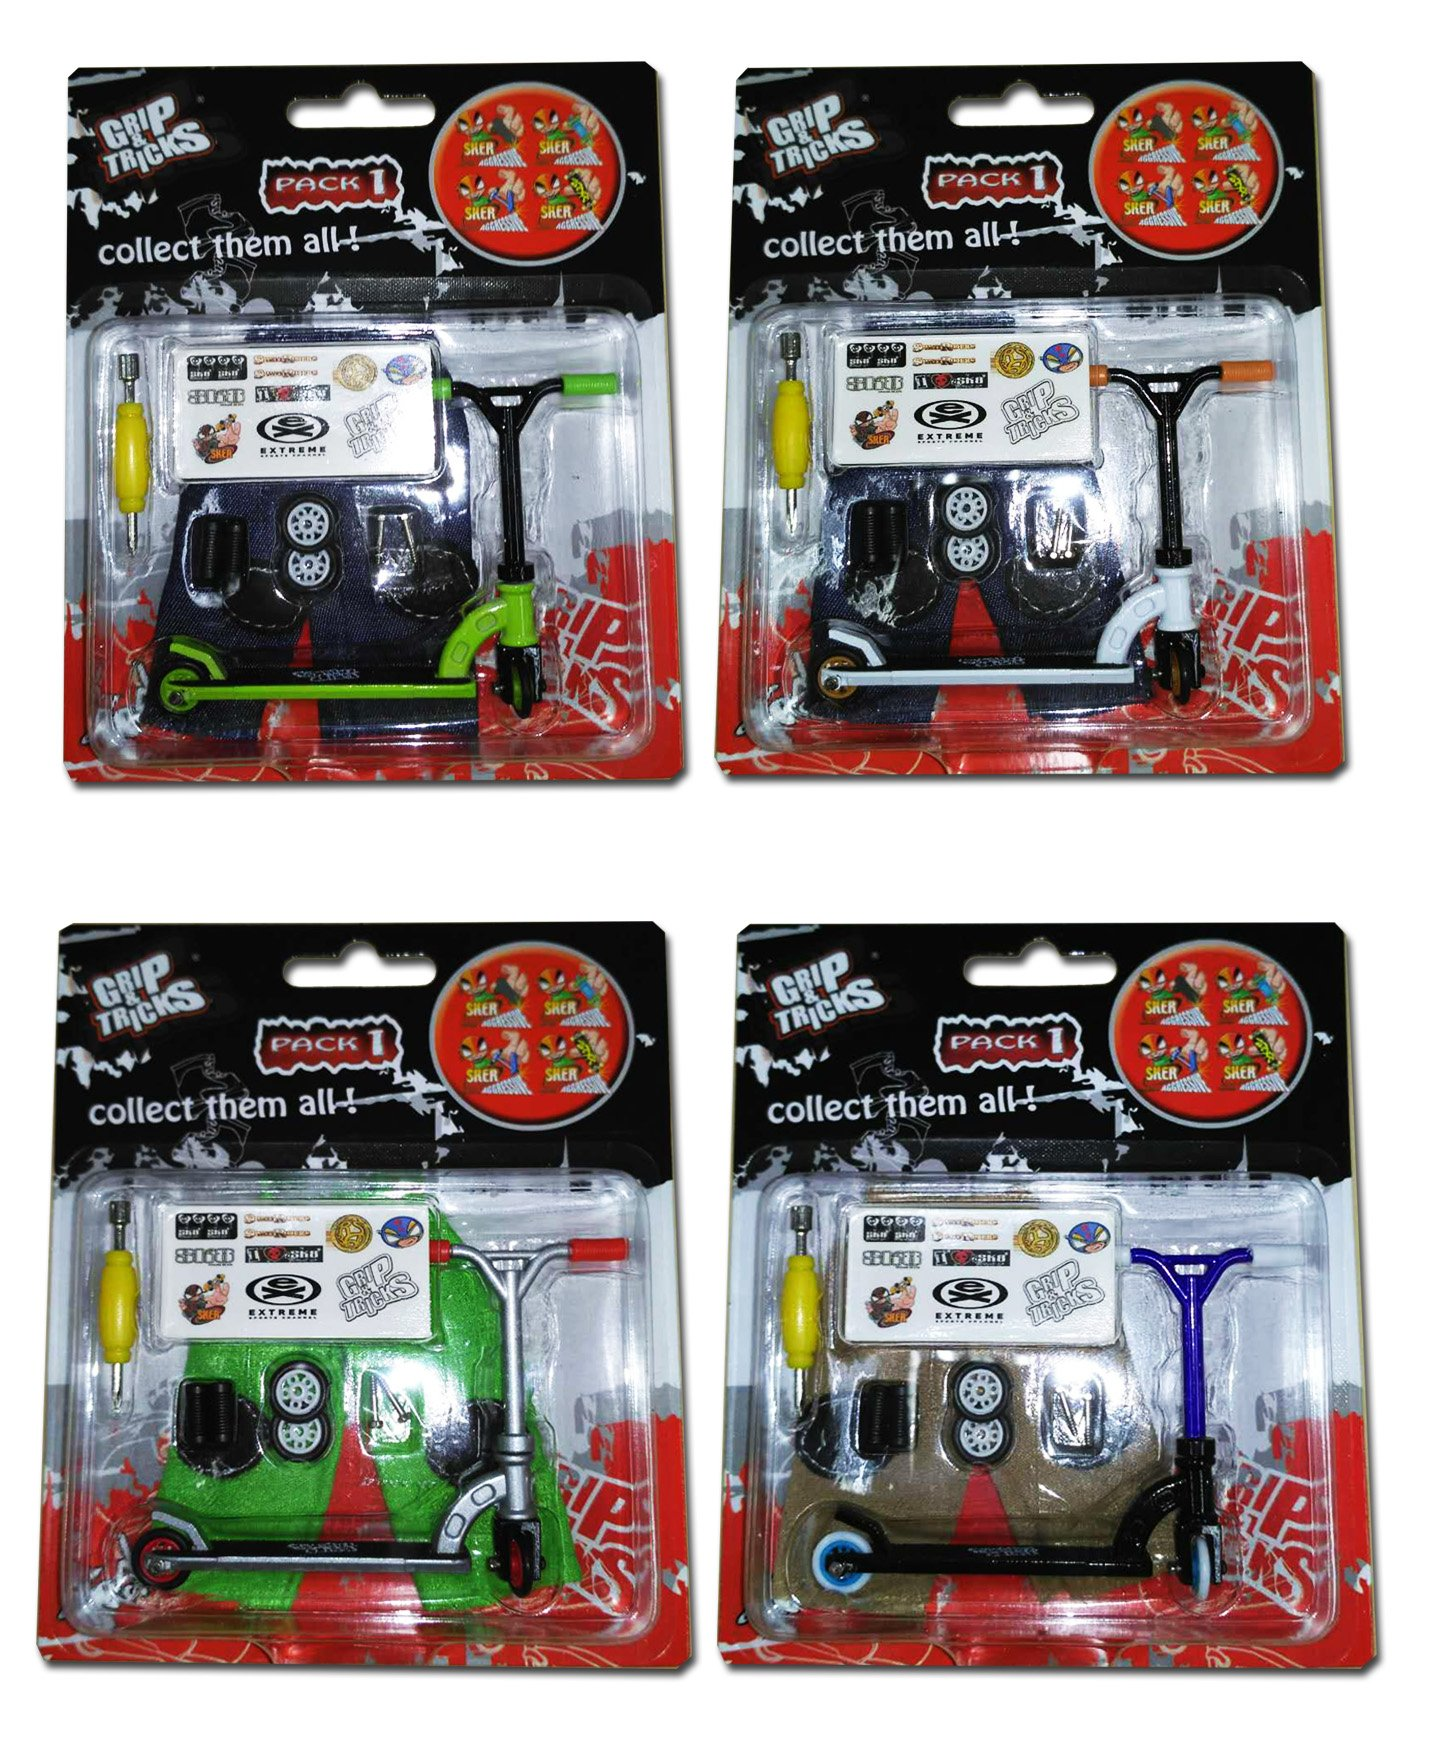 LOT of 4 Scooters - Grip and Tricks - Great Deal 4 Pack of Finger Scooters - Skate - Pack1 by Grip&Tricks (Image #1)